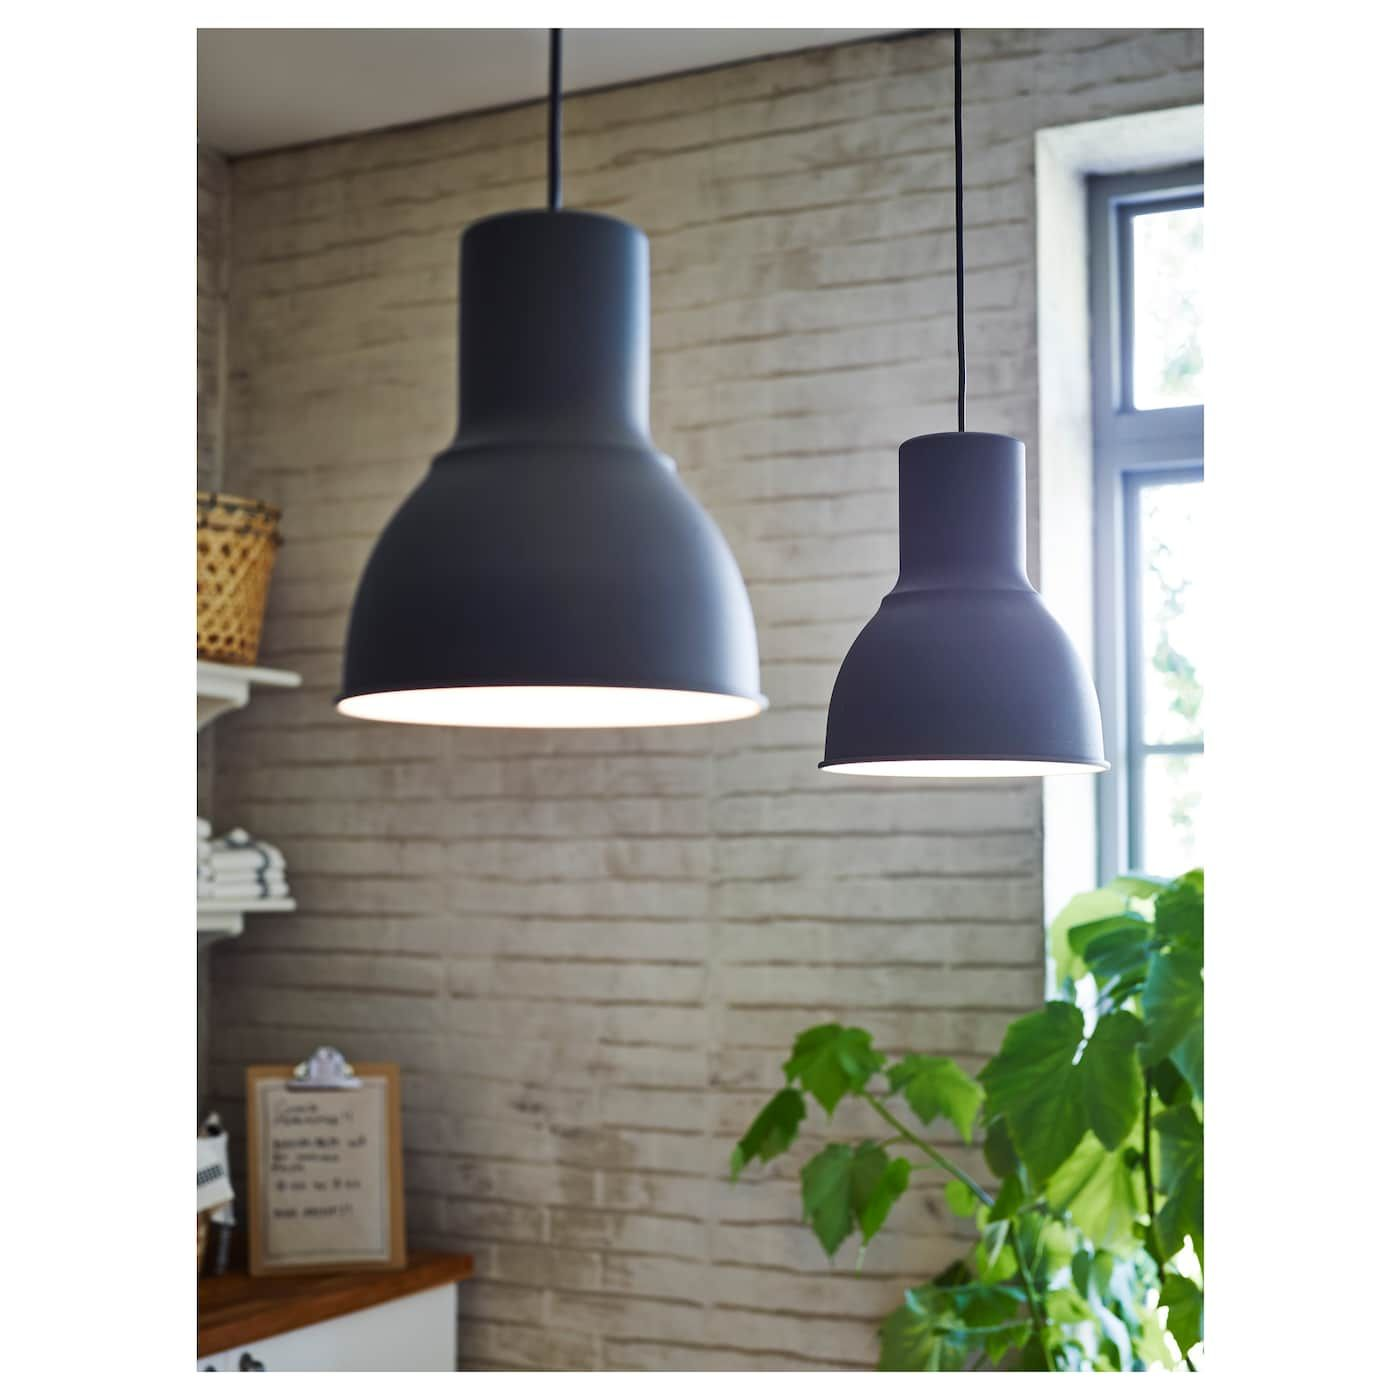 HEKTAR Pendant lamp, dark gray in 2019 | Office Space ...